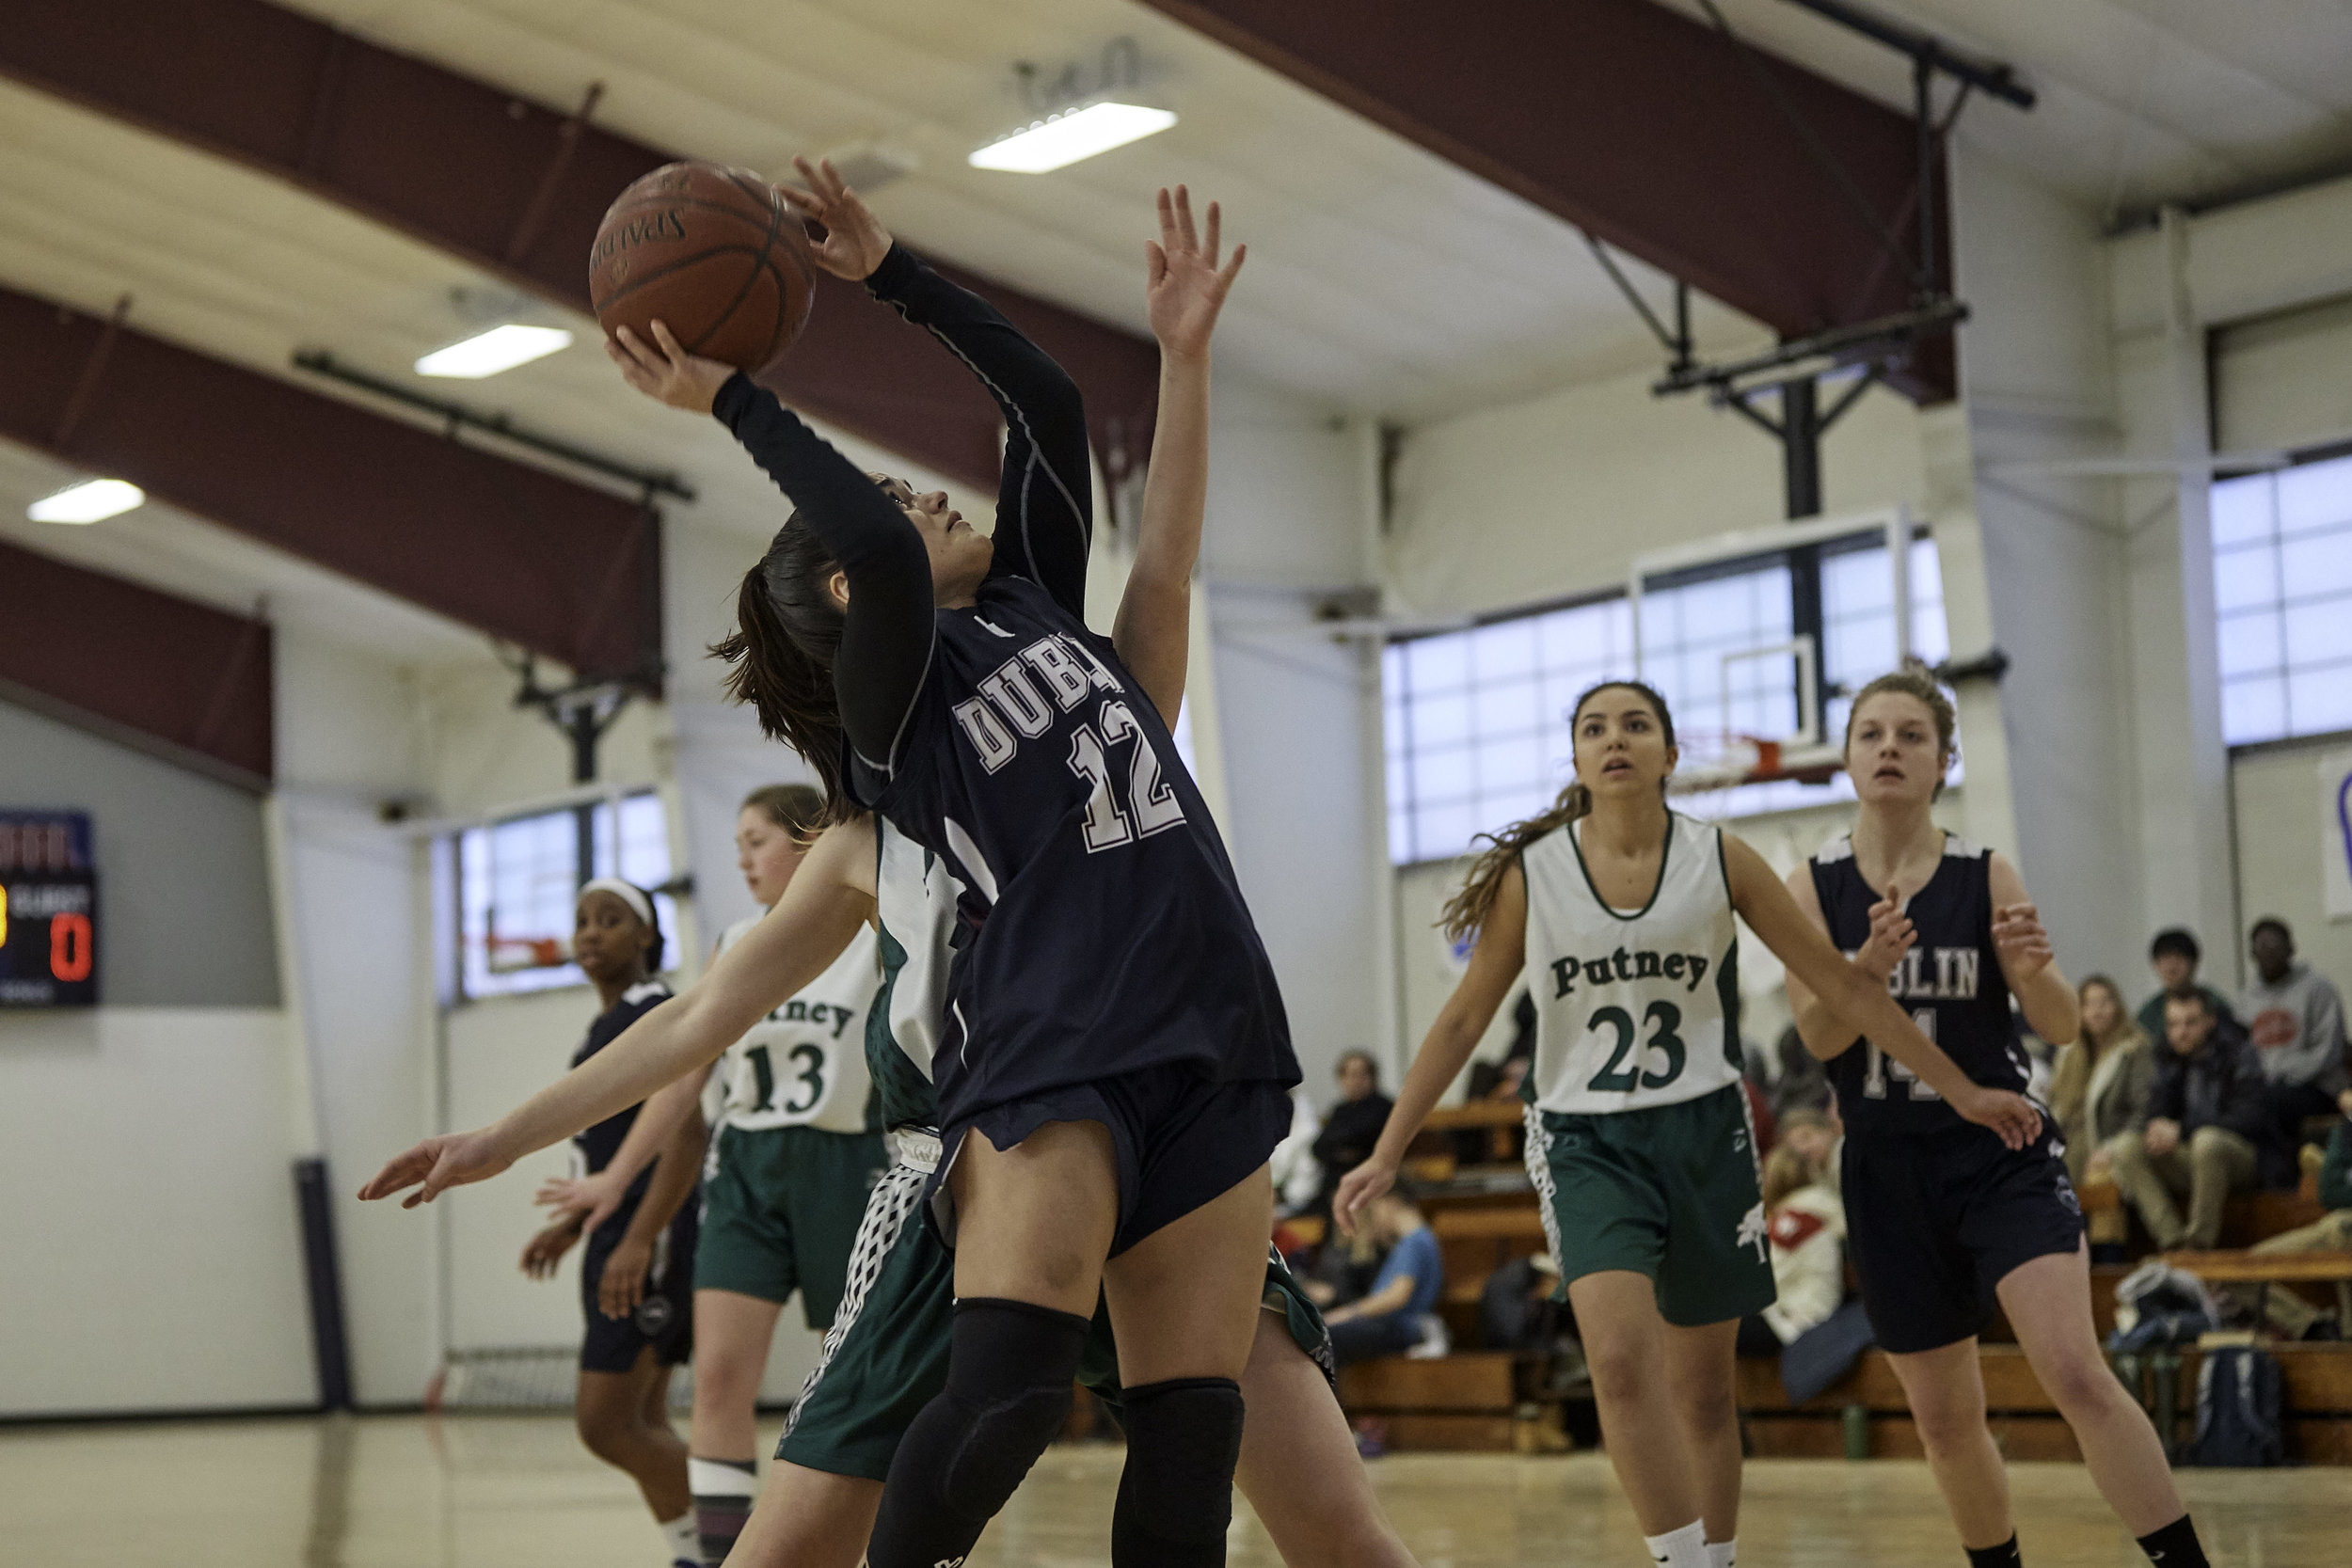 Basketball vs Putney School, February 9, 2019 - 167130.jpg